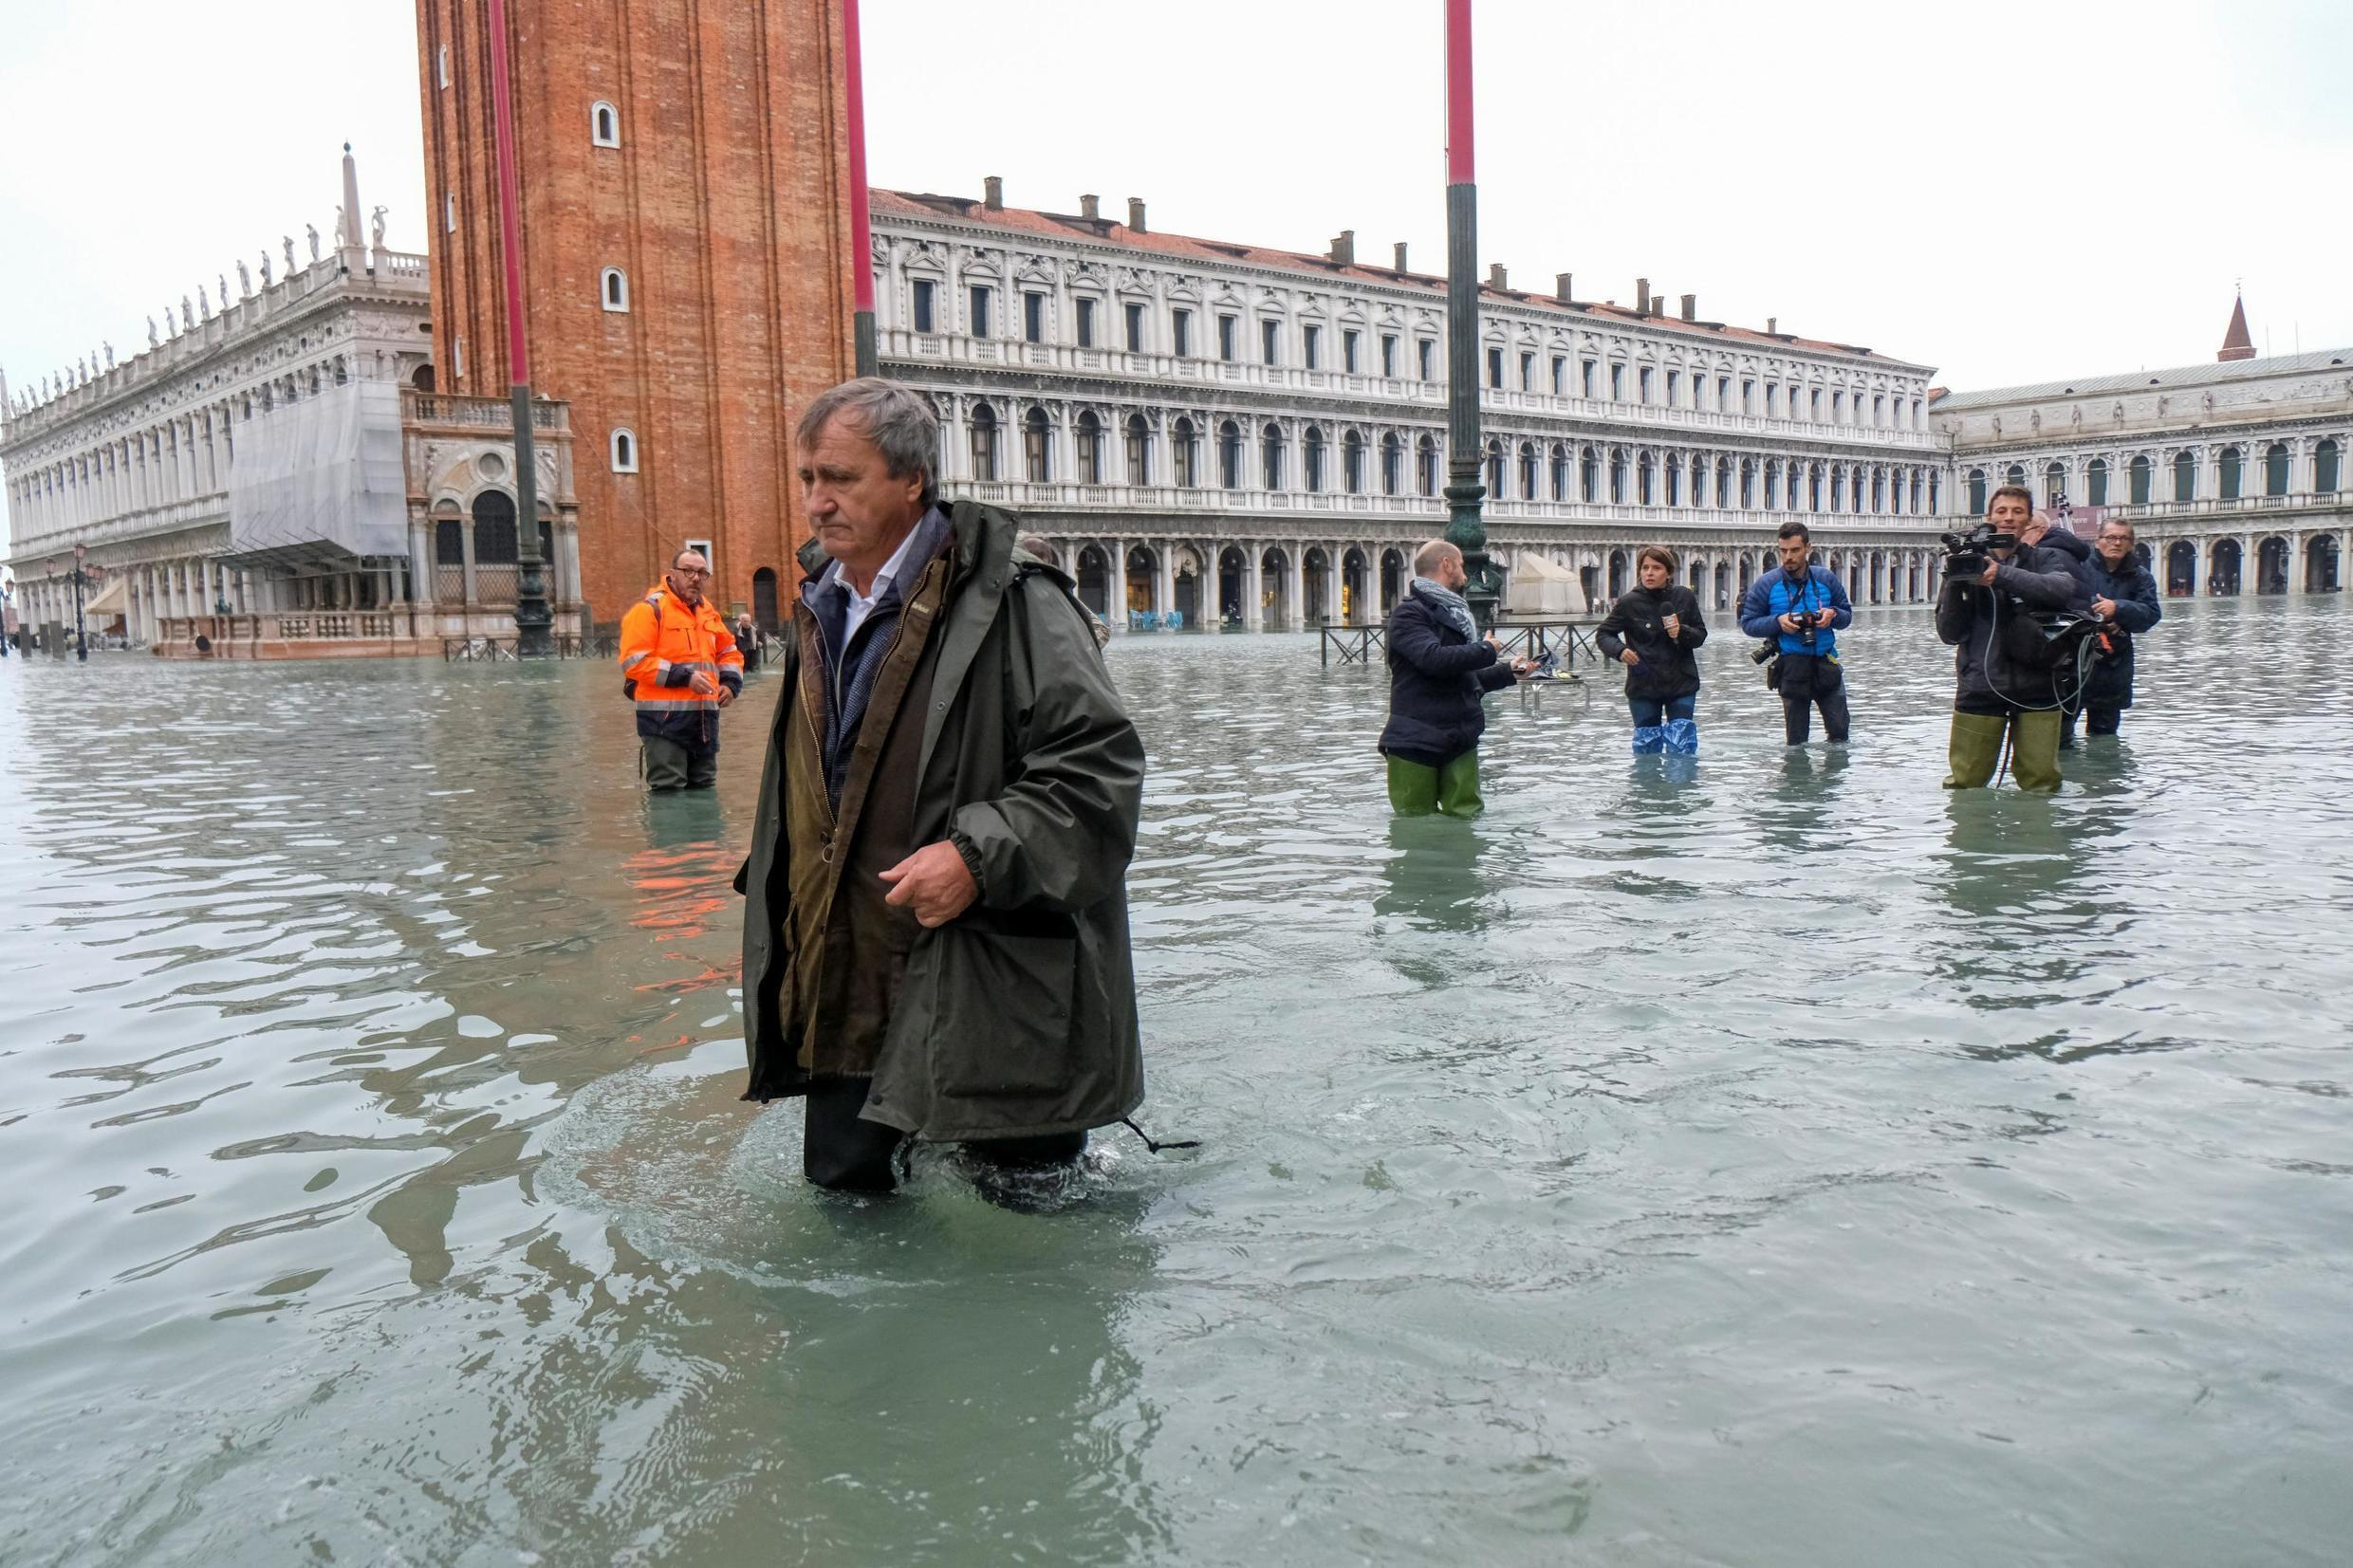 The Mayor of Venice Luigi Brugnaro walks on St Mark's Square during an exceptionally high water levels in Venice, Italy November 13, 2019.